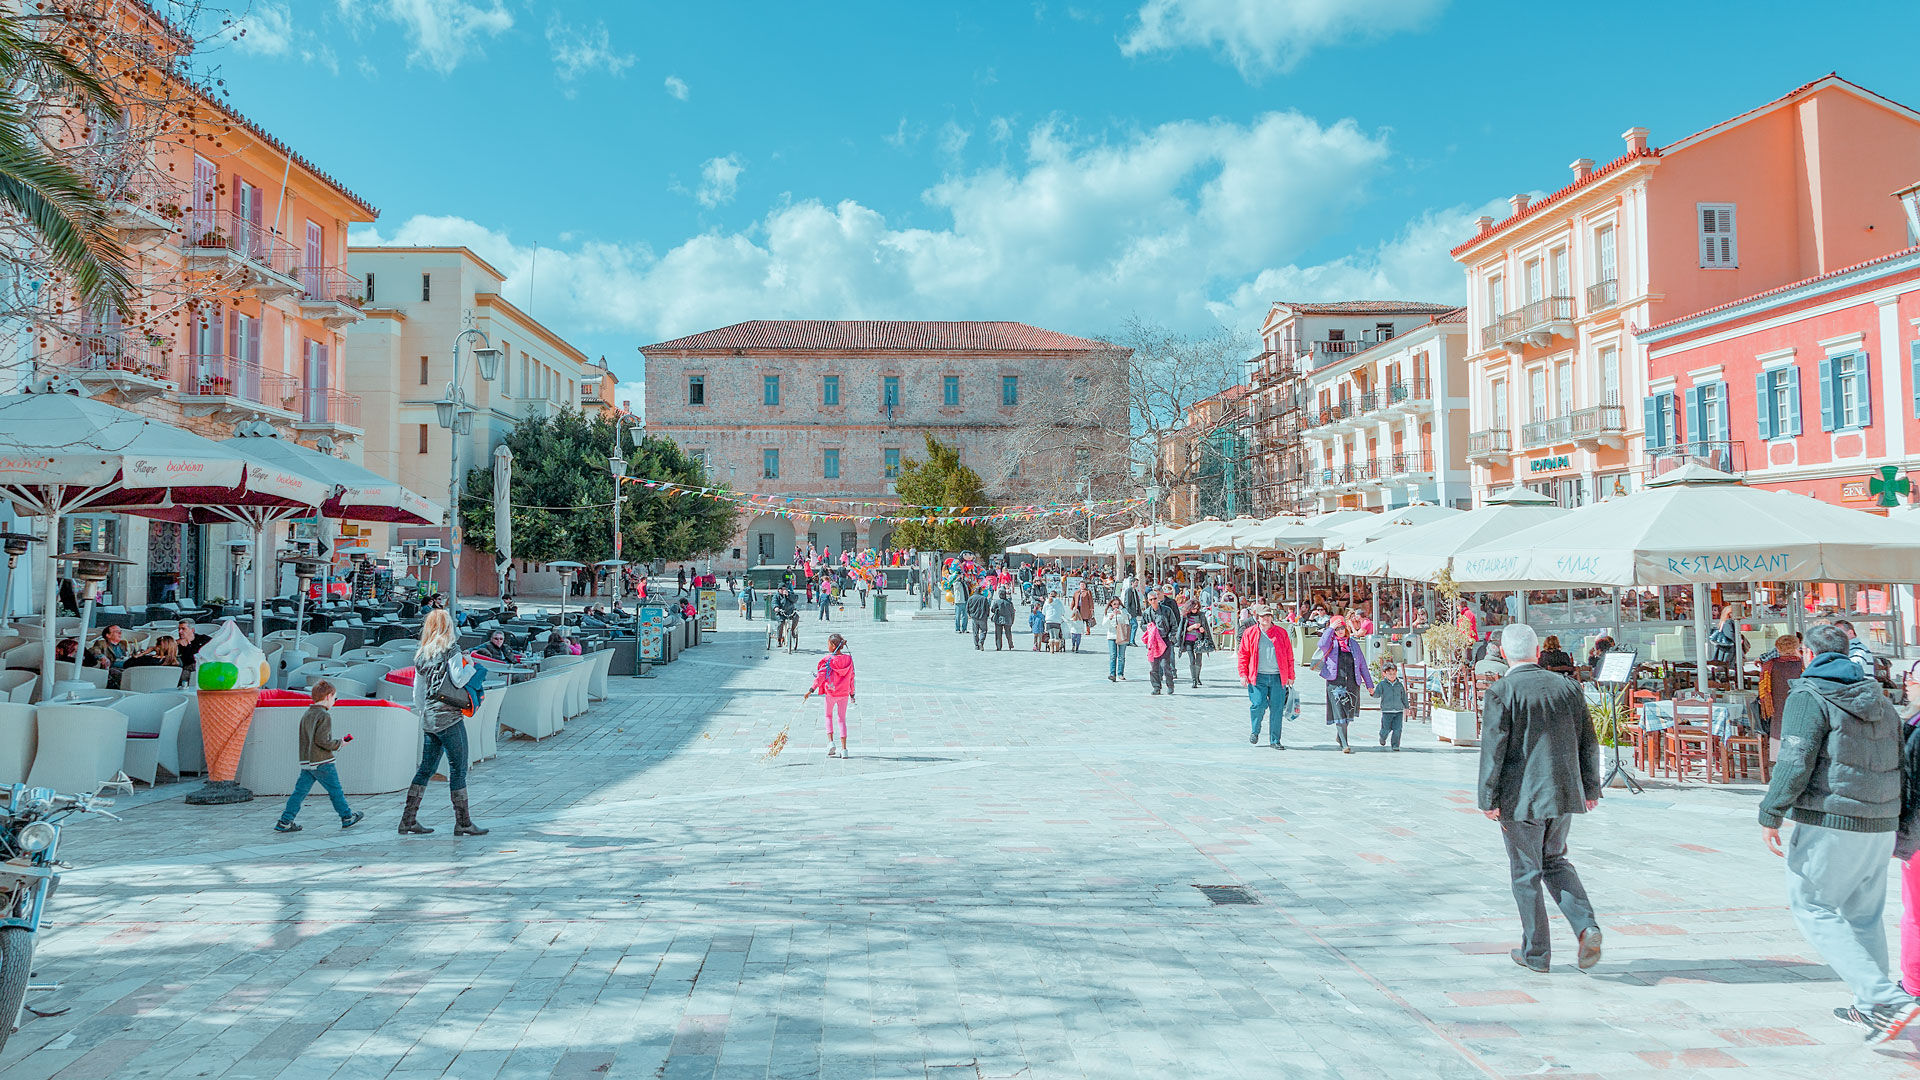 Syntagma Square, the heart of the Old Town and your gateway to many of its most important buildings